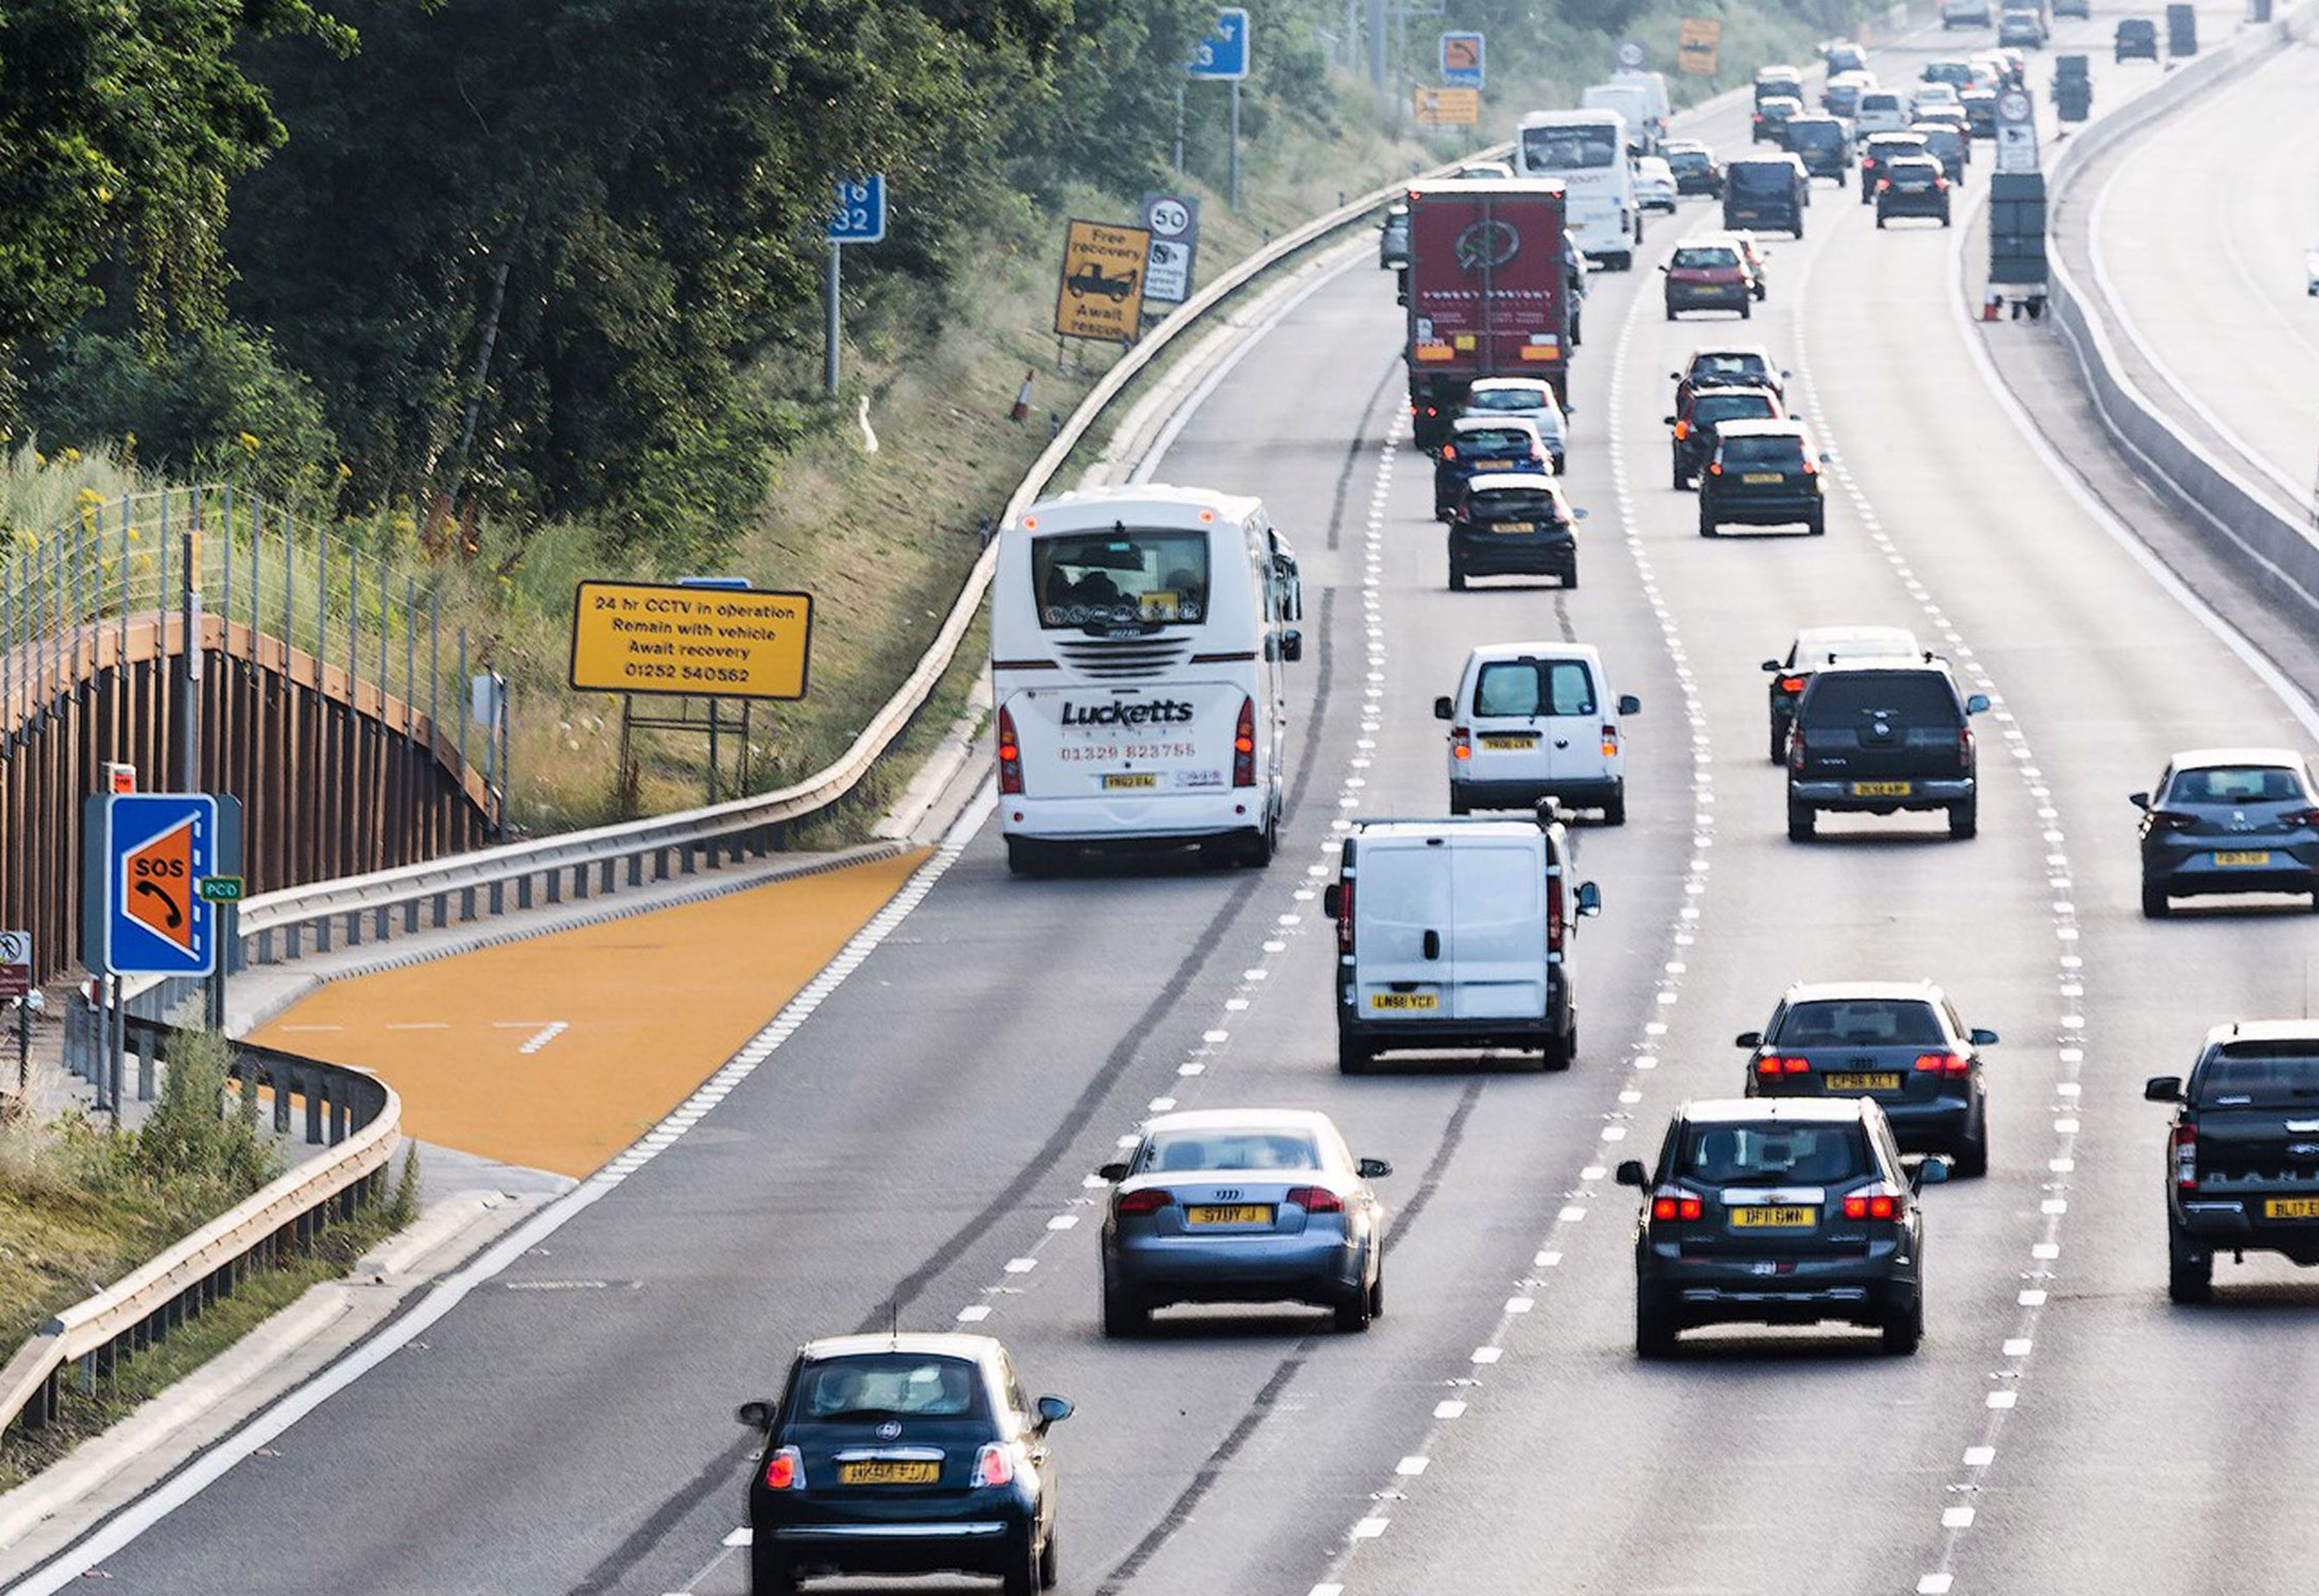 Road bosses could face criminal charges over 'smart' motorway deaths